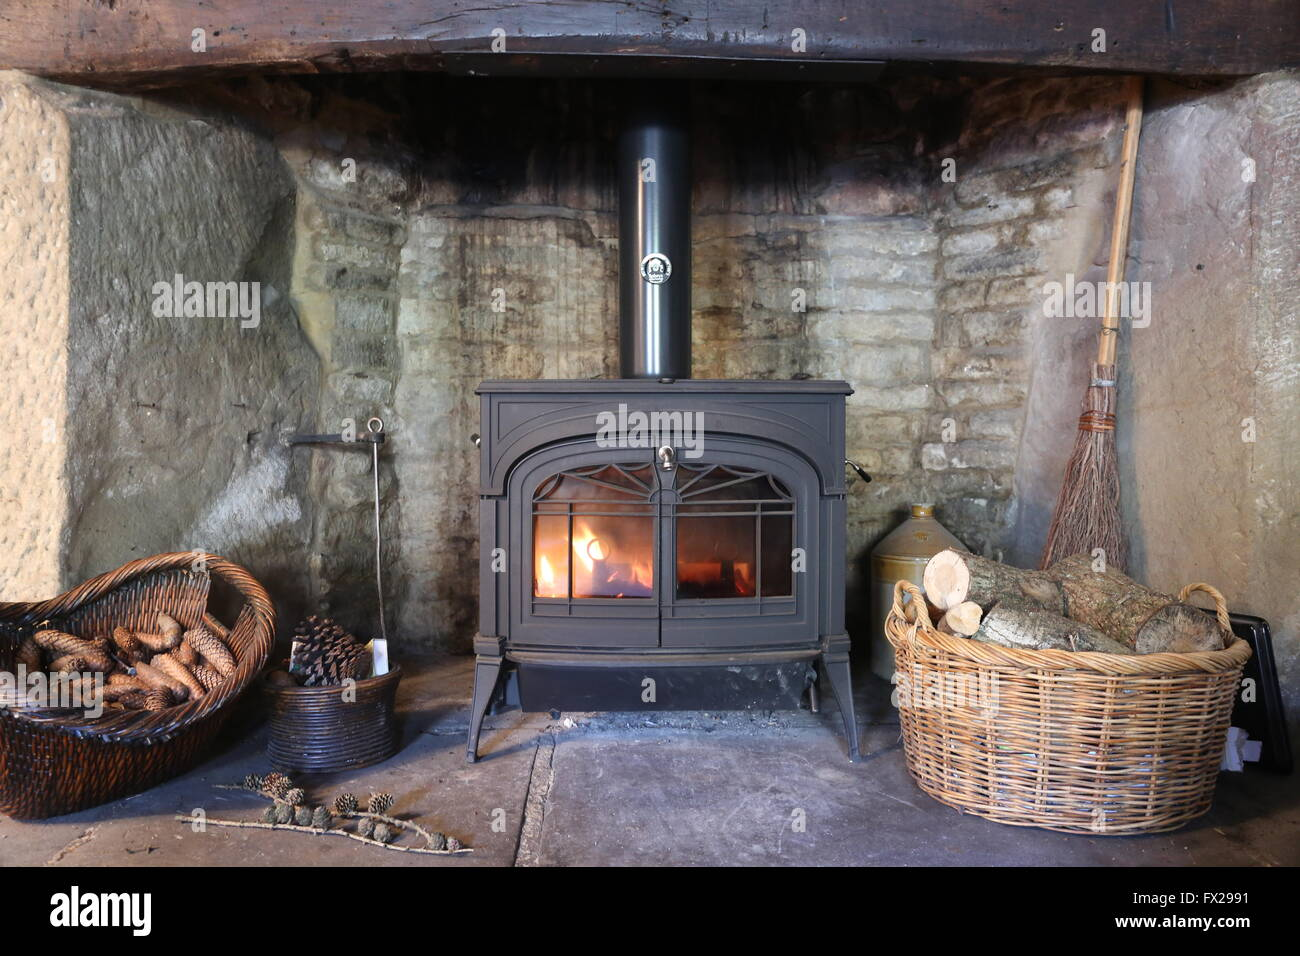 Wood Burning Stove In Inglenook Fireplace Stock Photo